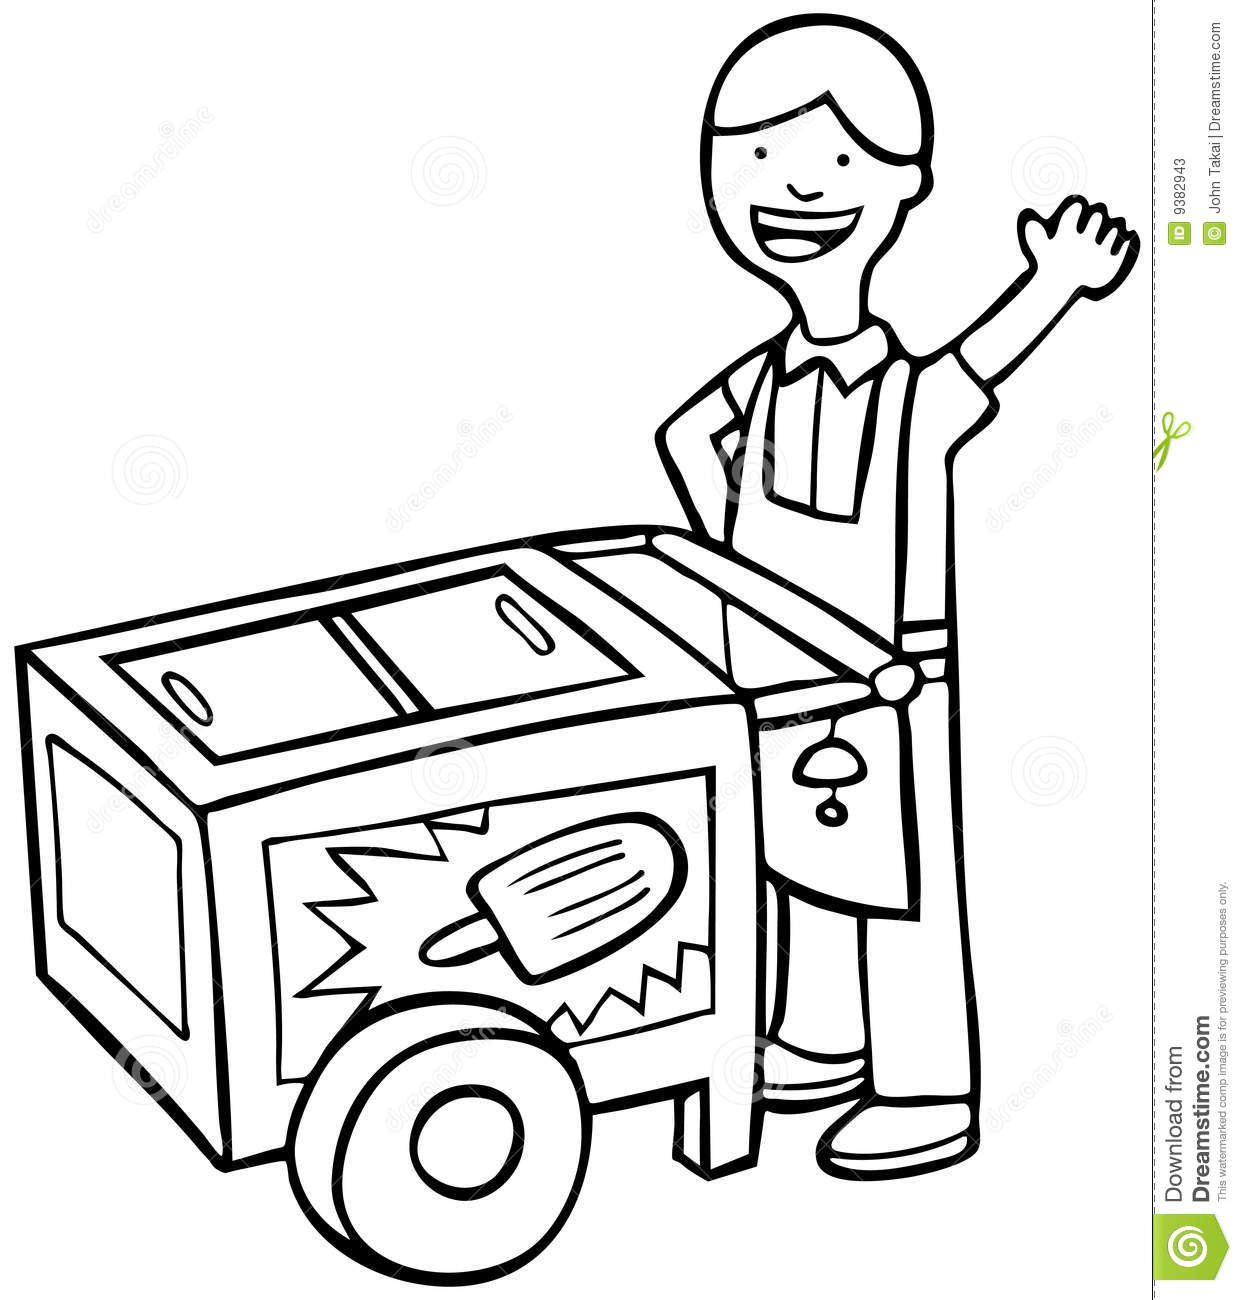 1242x1300 Ice Cream Truck Clipart Black And White Amp Ice Cream Truck Clip Art